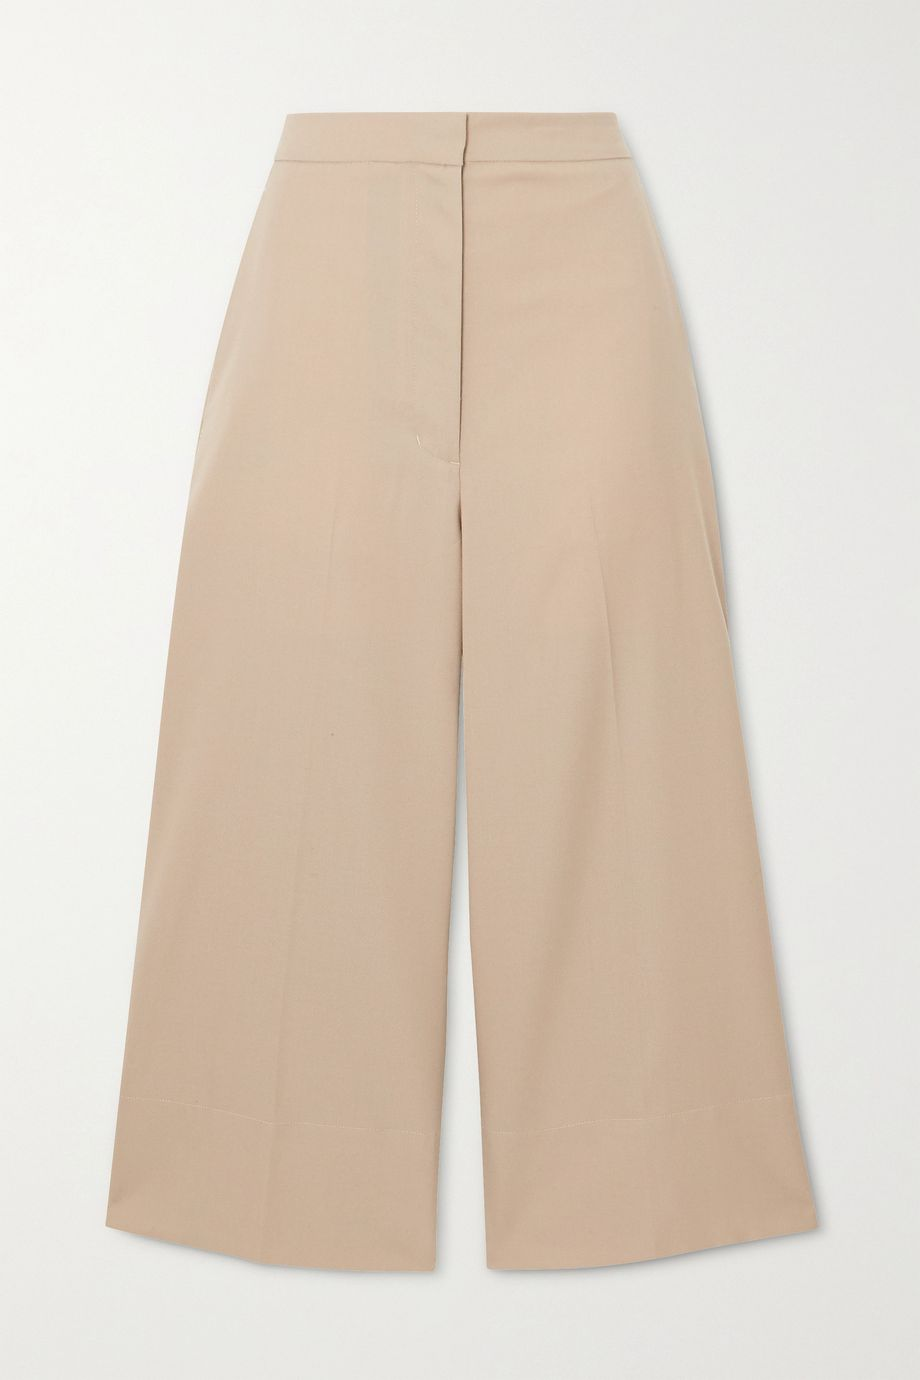 3.1 Phillip Lim Cropped wool-blend wide-leg pants